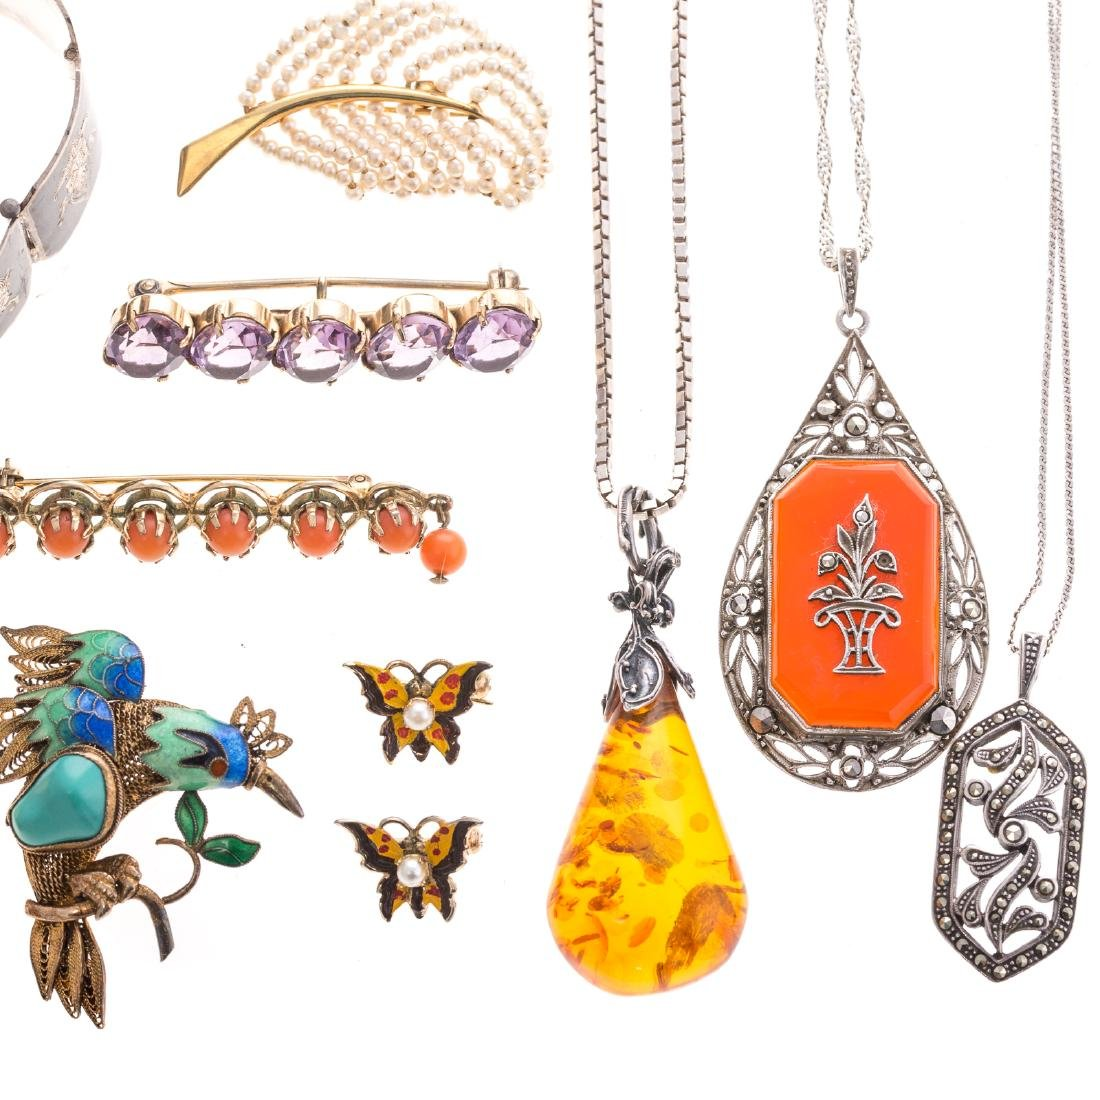 A Collection of Lady's Jewelry Featuring Amber - 2